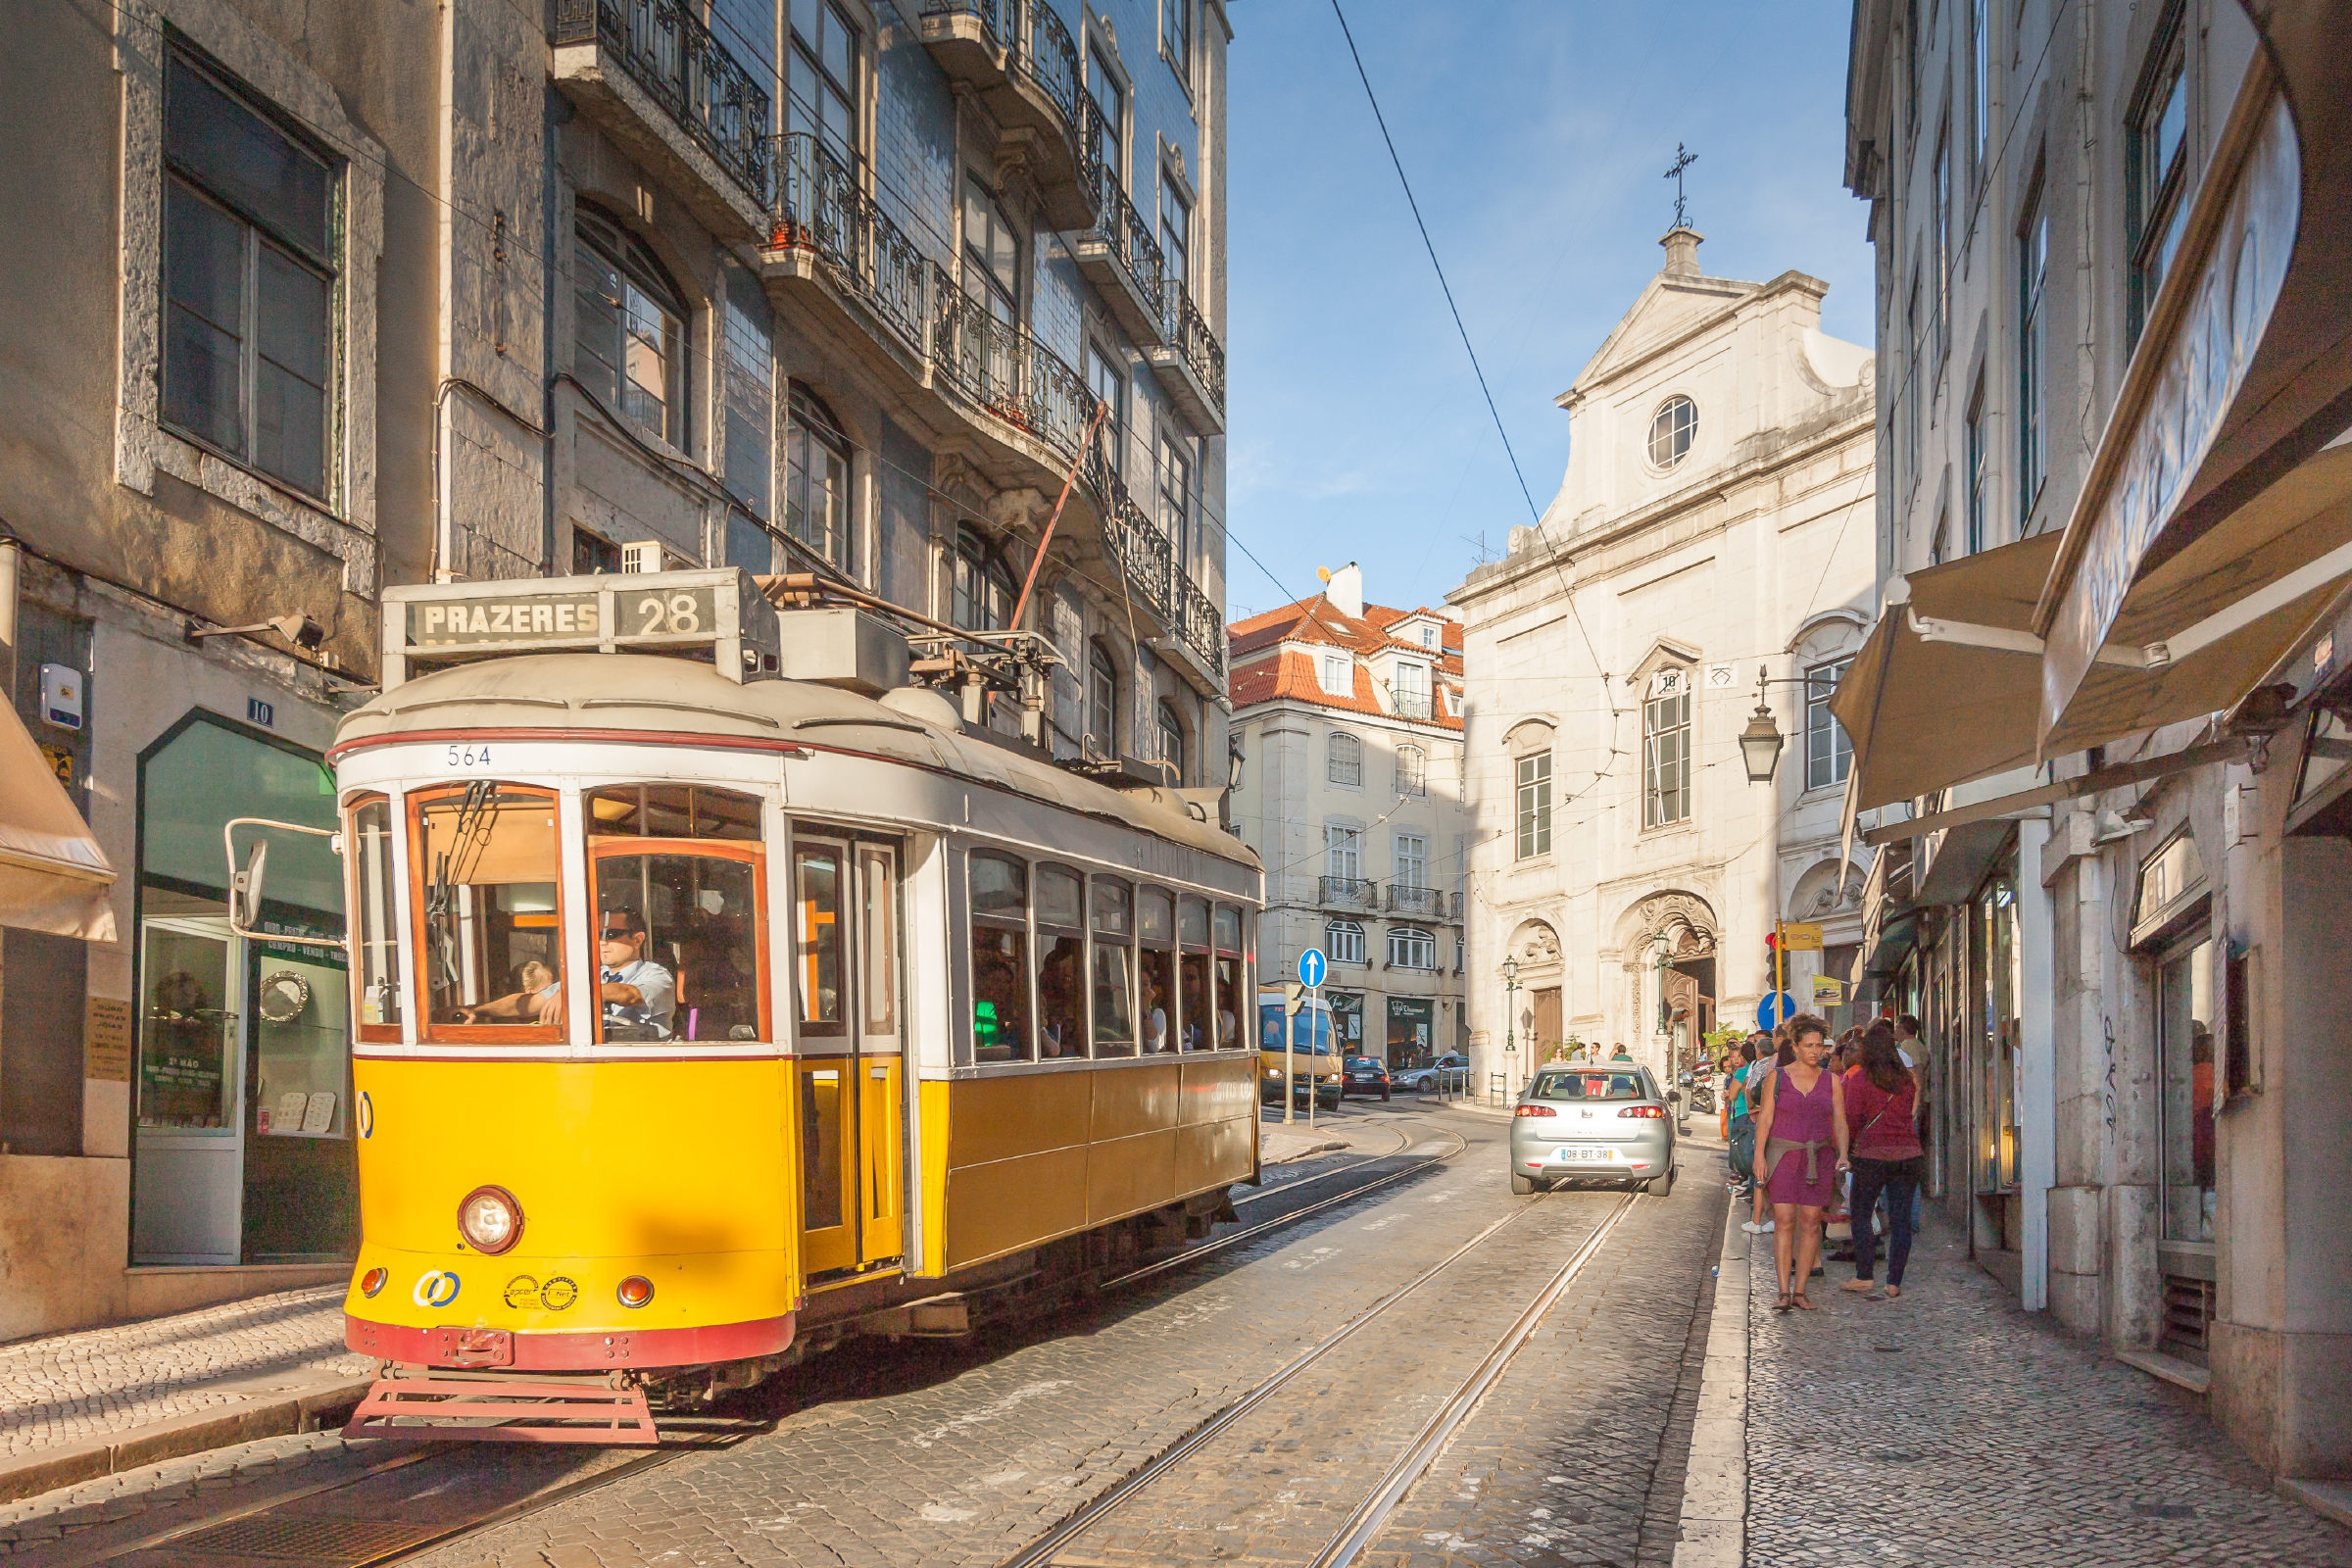 One of Lisbon's classic trams travels through the streets.